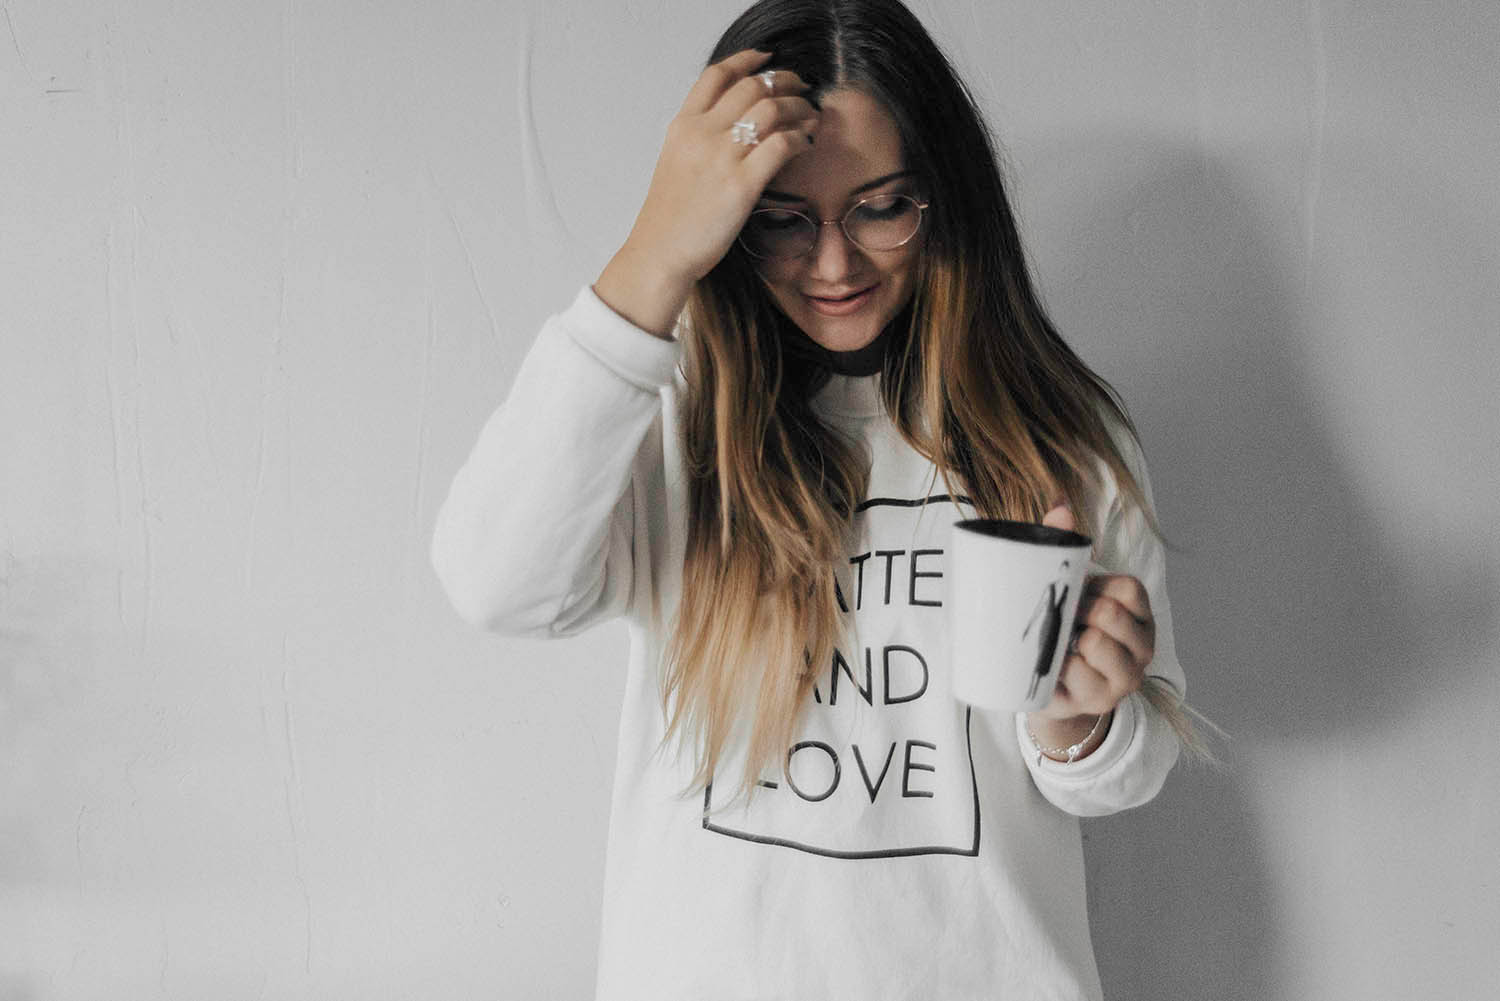 Latte and Love - Girl with glasses holding coffee cup